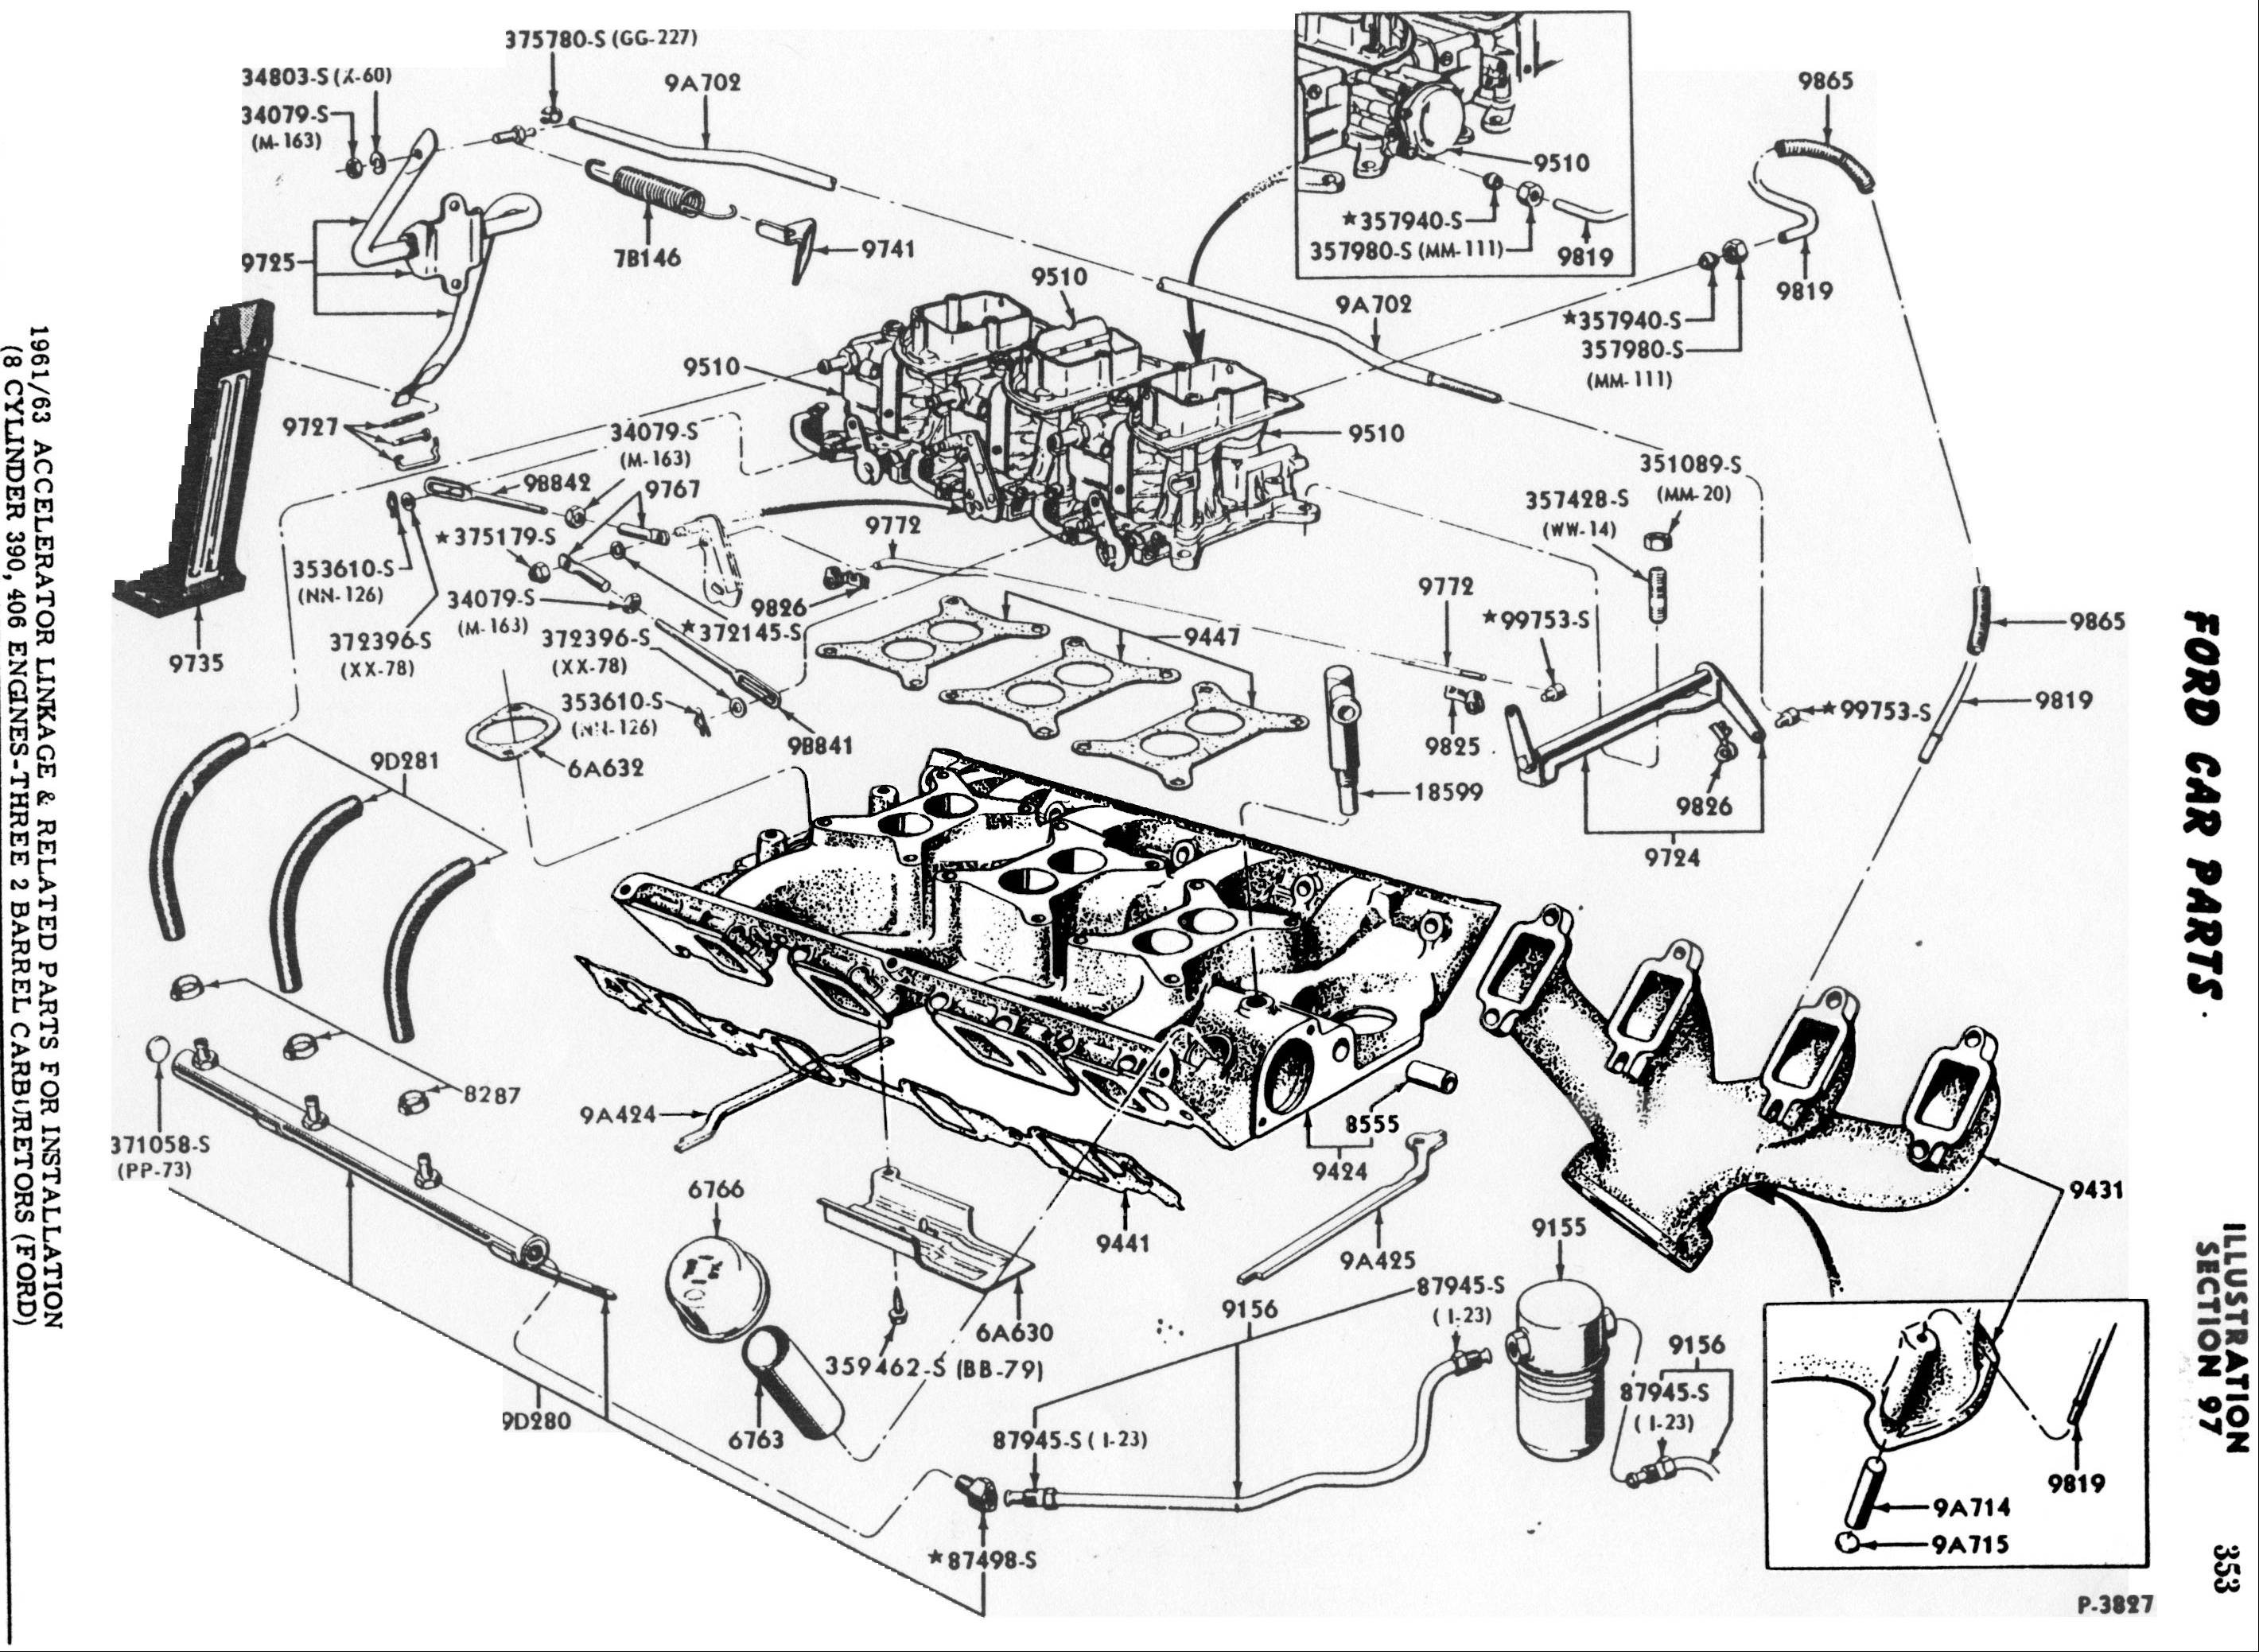 Car Engine Diagram with Labeled 460 ford Engine Diagram Wiring Info • Of Car Engine Diagram with Labeled